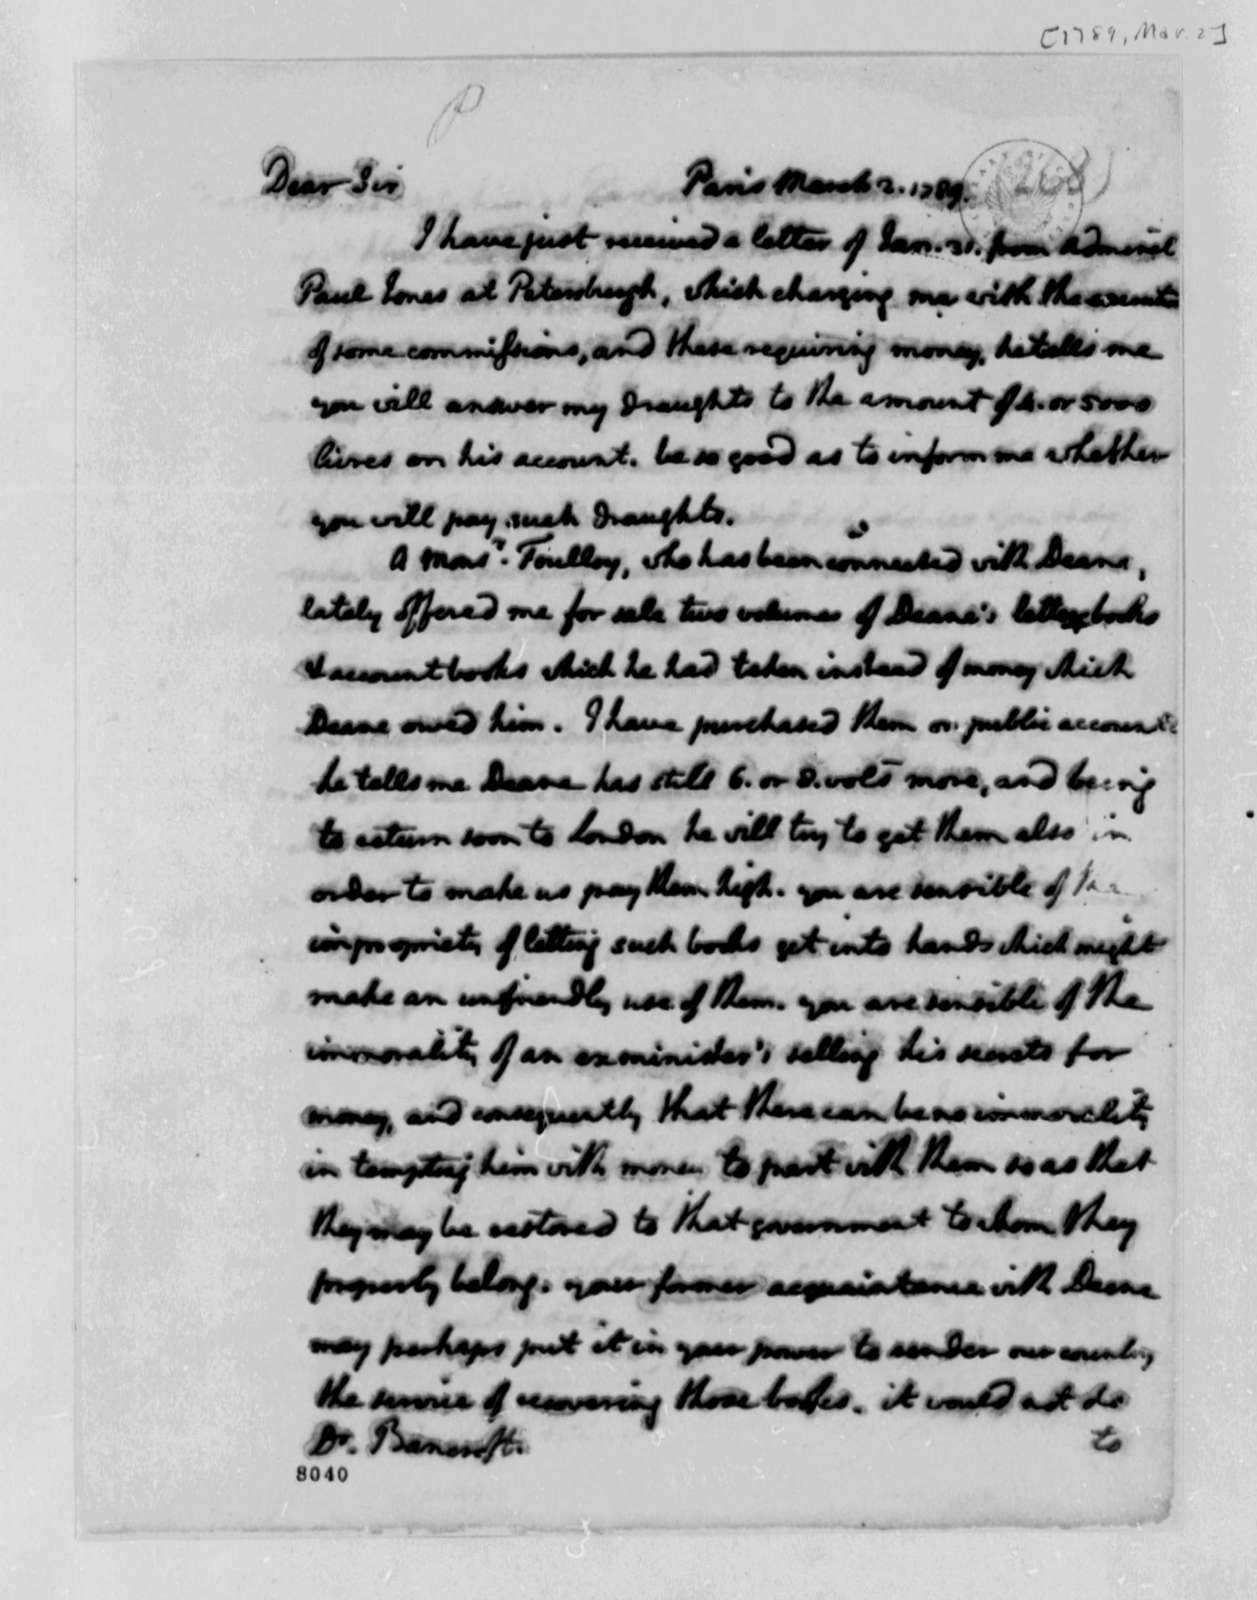 Thomas Jefferson to Edward Bancroft, March 2, 1789